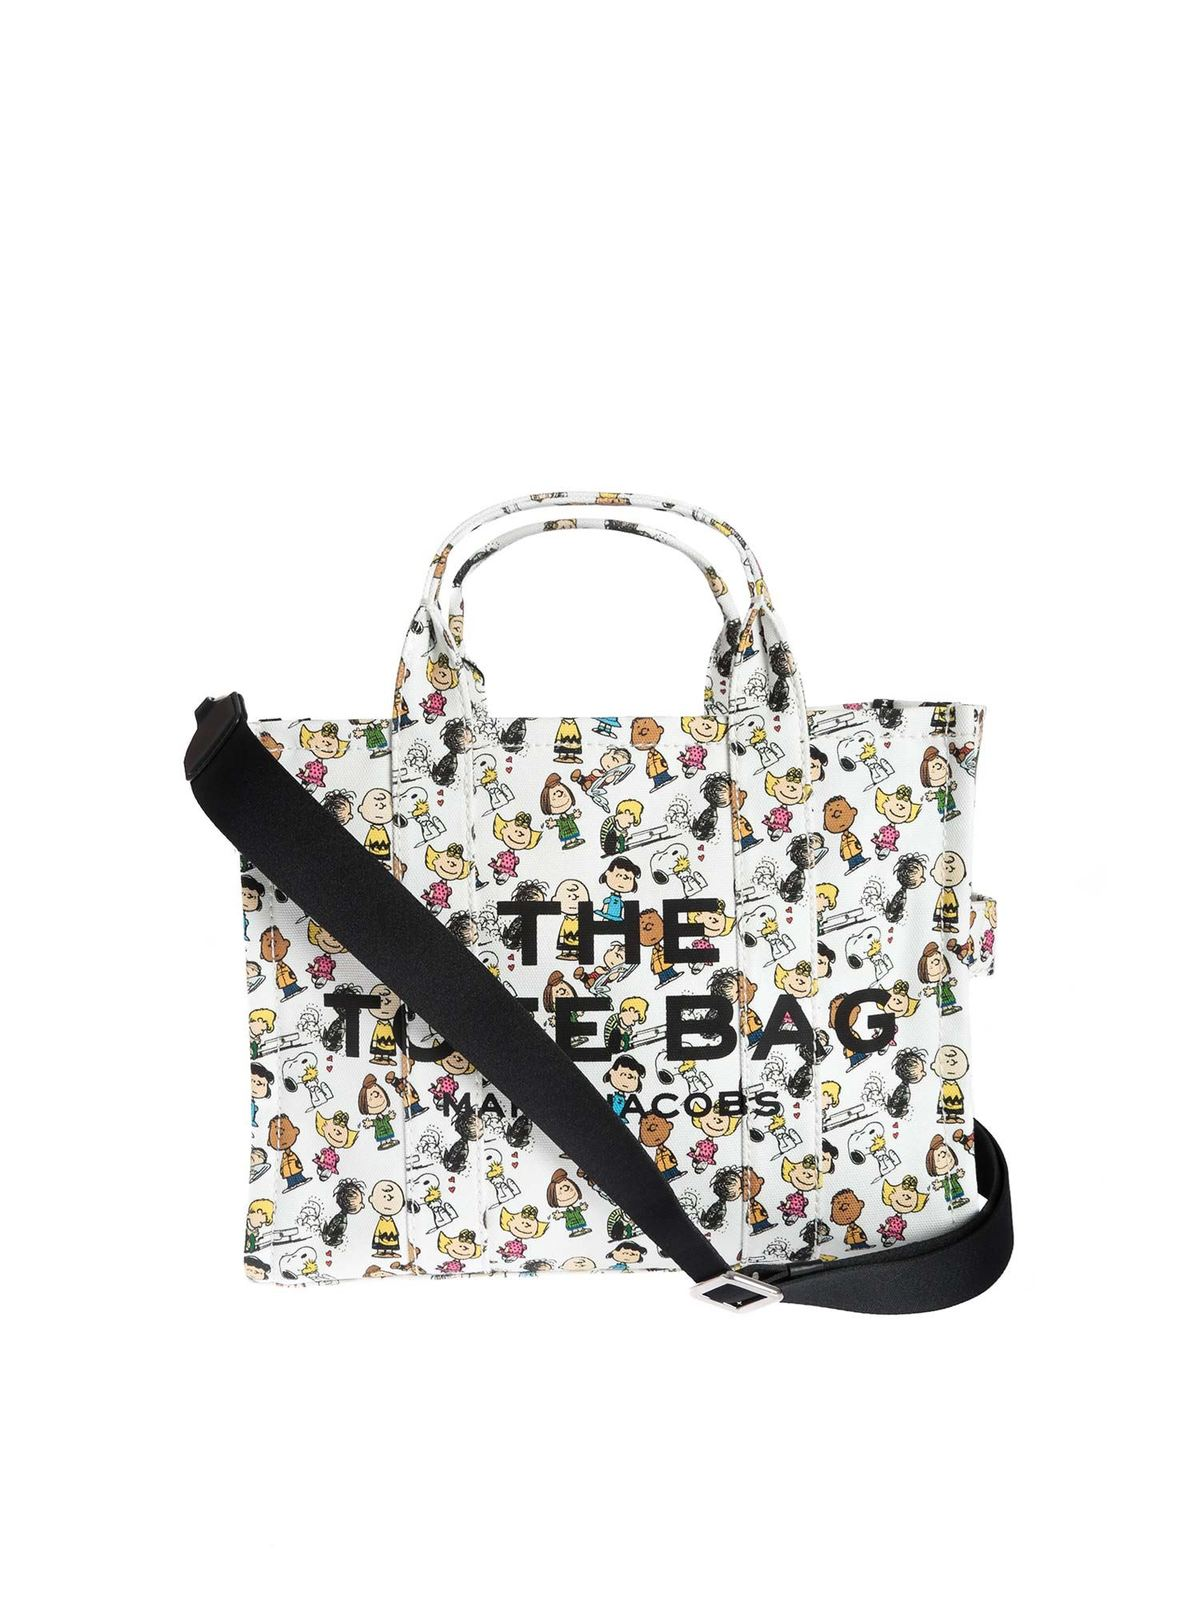 Marc Jacobs PEANUTS X THE TOTE BAG IN WHITE